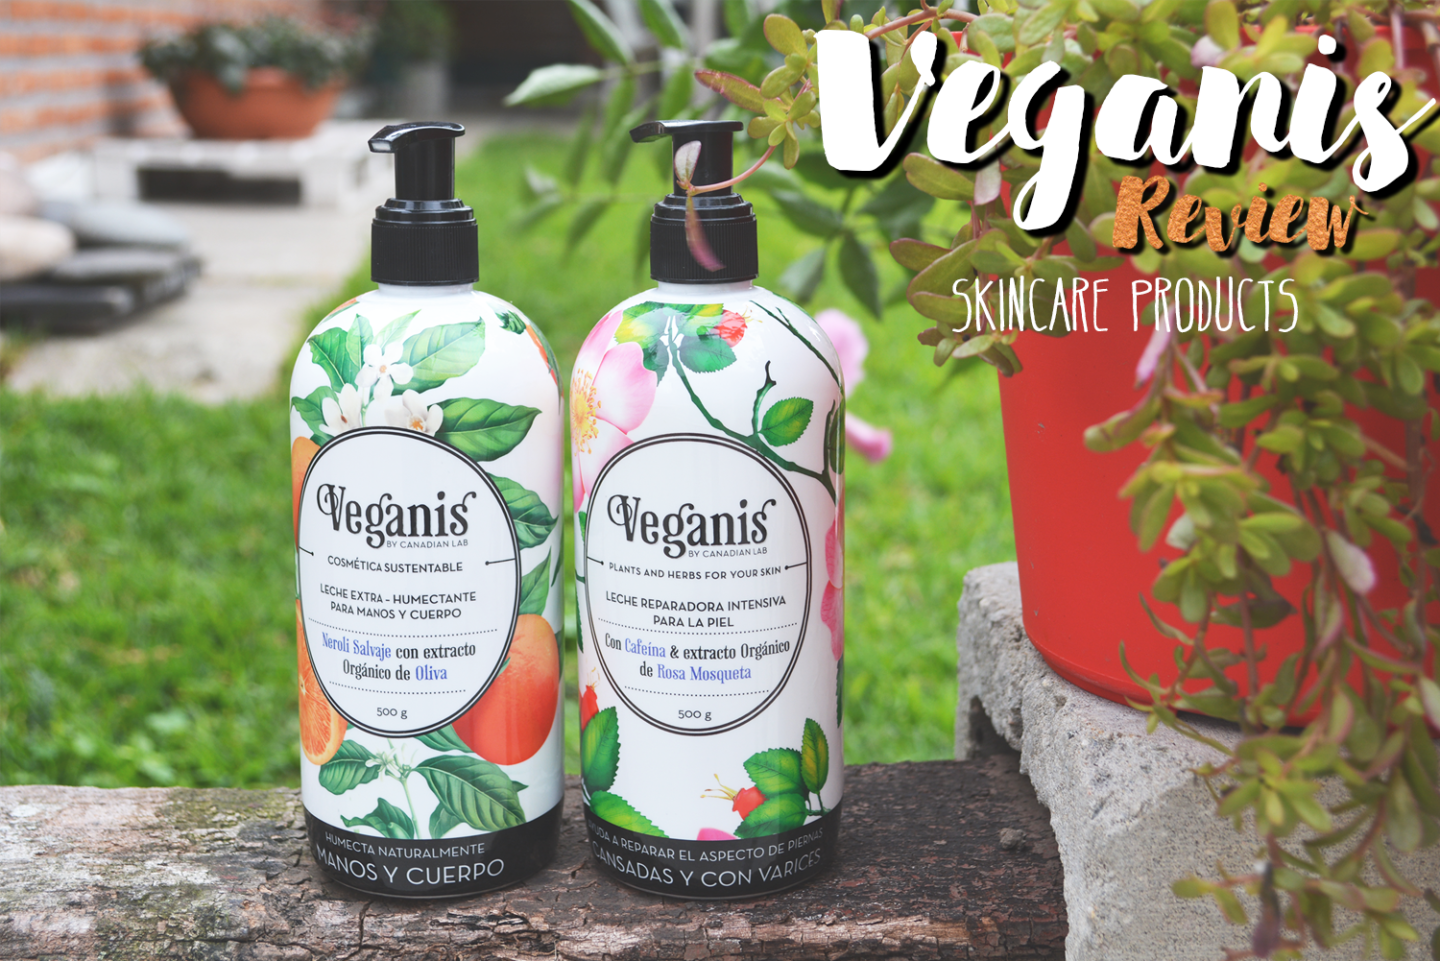 BEAUTY: Veganis products review